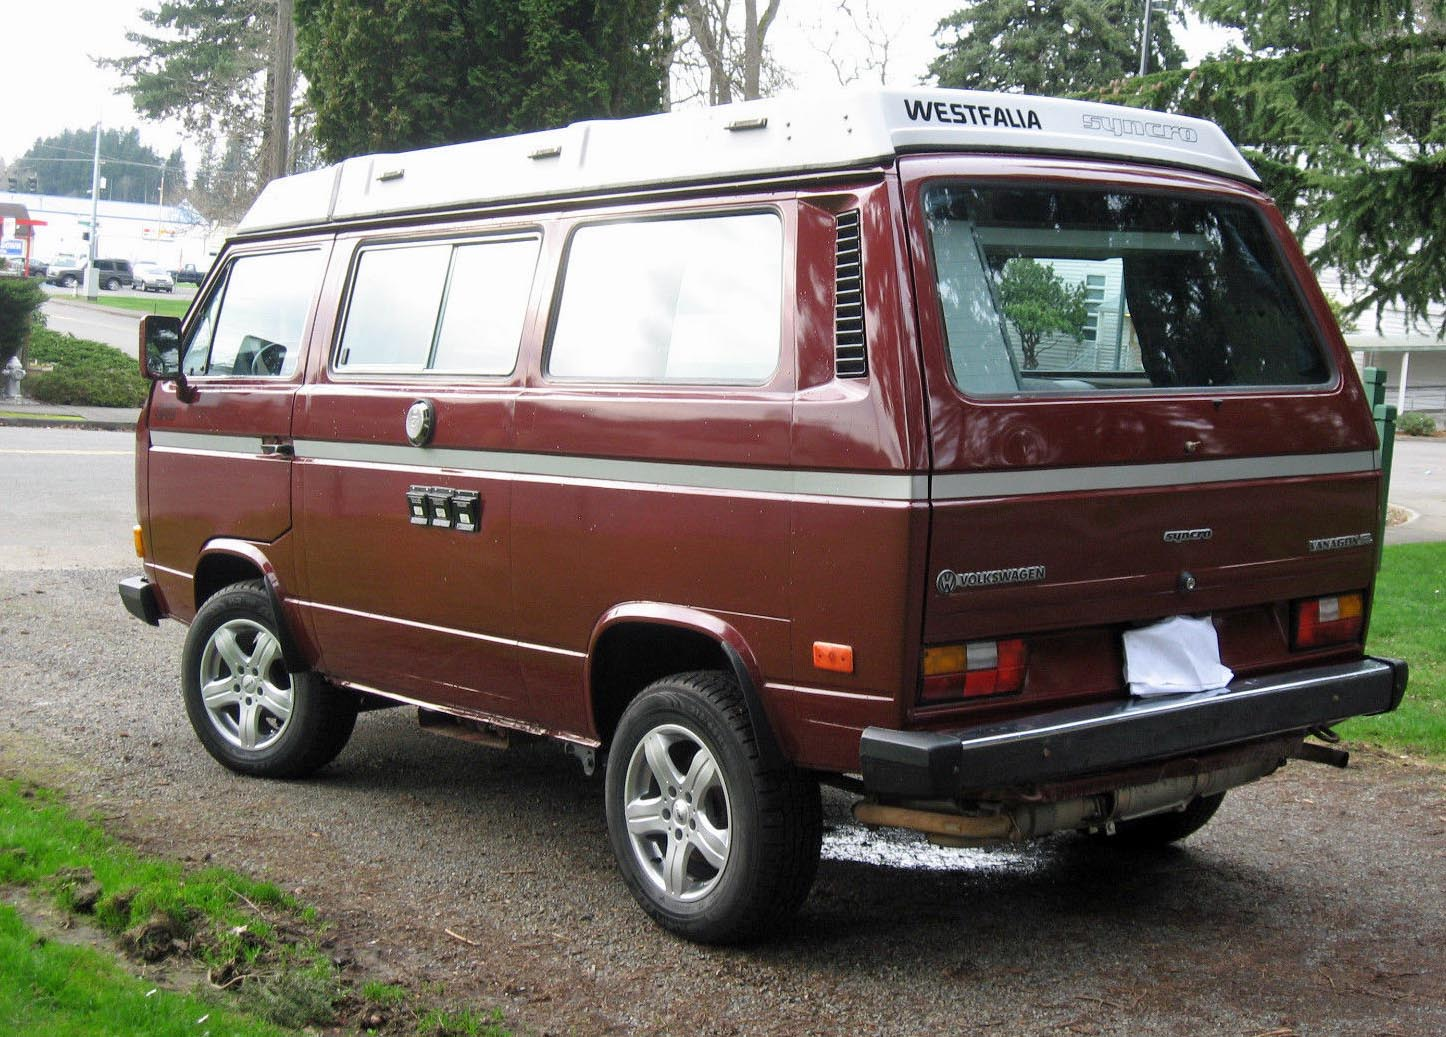 1987 VW Vanagon Syncro Westfalia Camper - Auction or $37k in